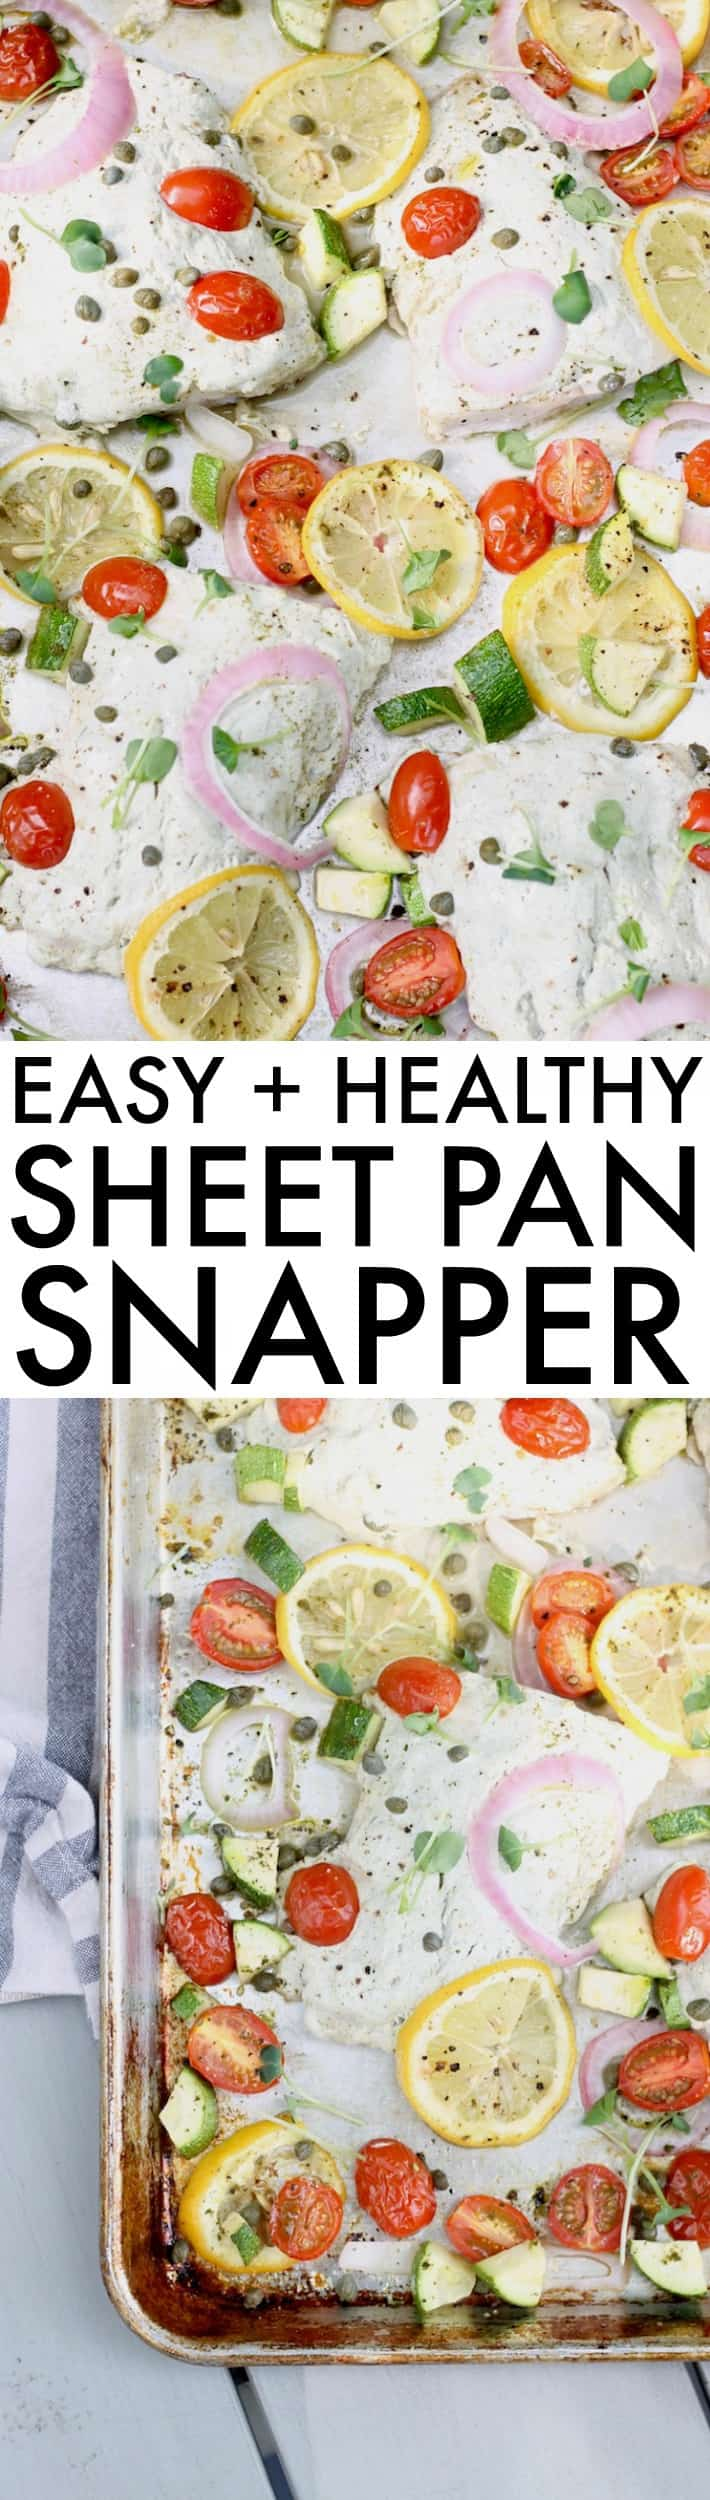 An easy and impressive meal, this healthy Sheet Pan MediterraneanSnapper with bright veggies and citrus will become your new favorite dish!